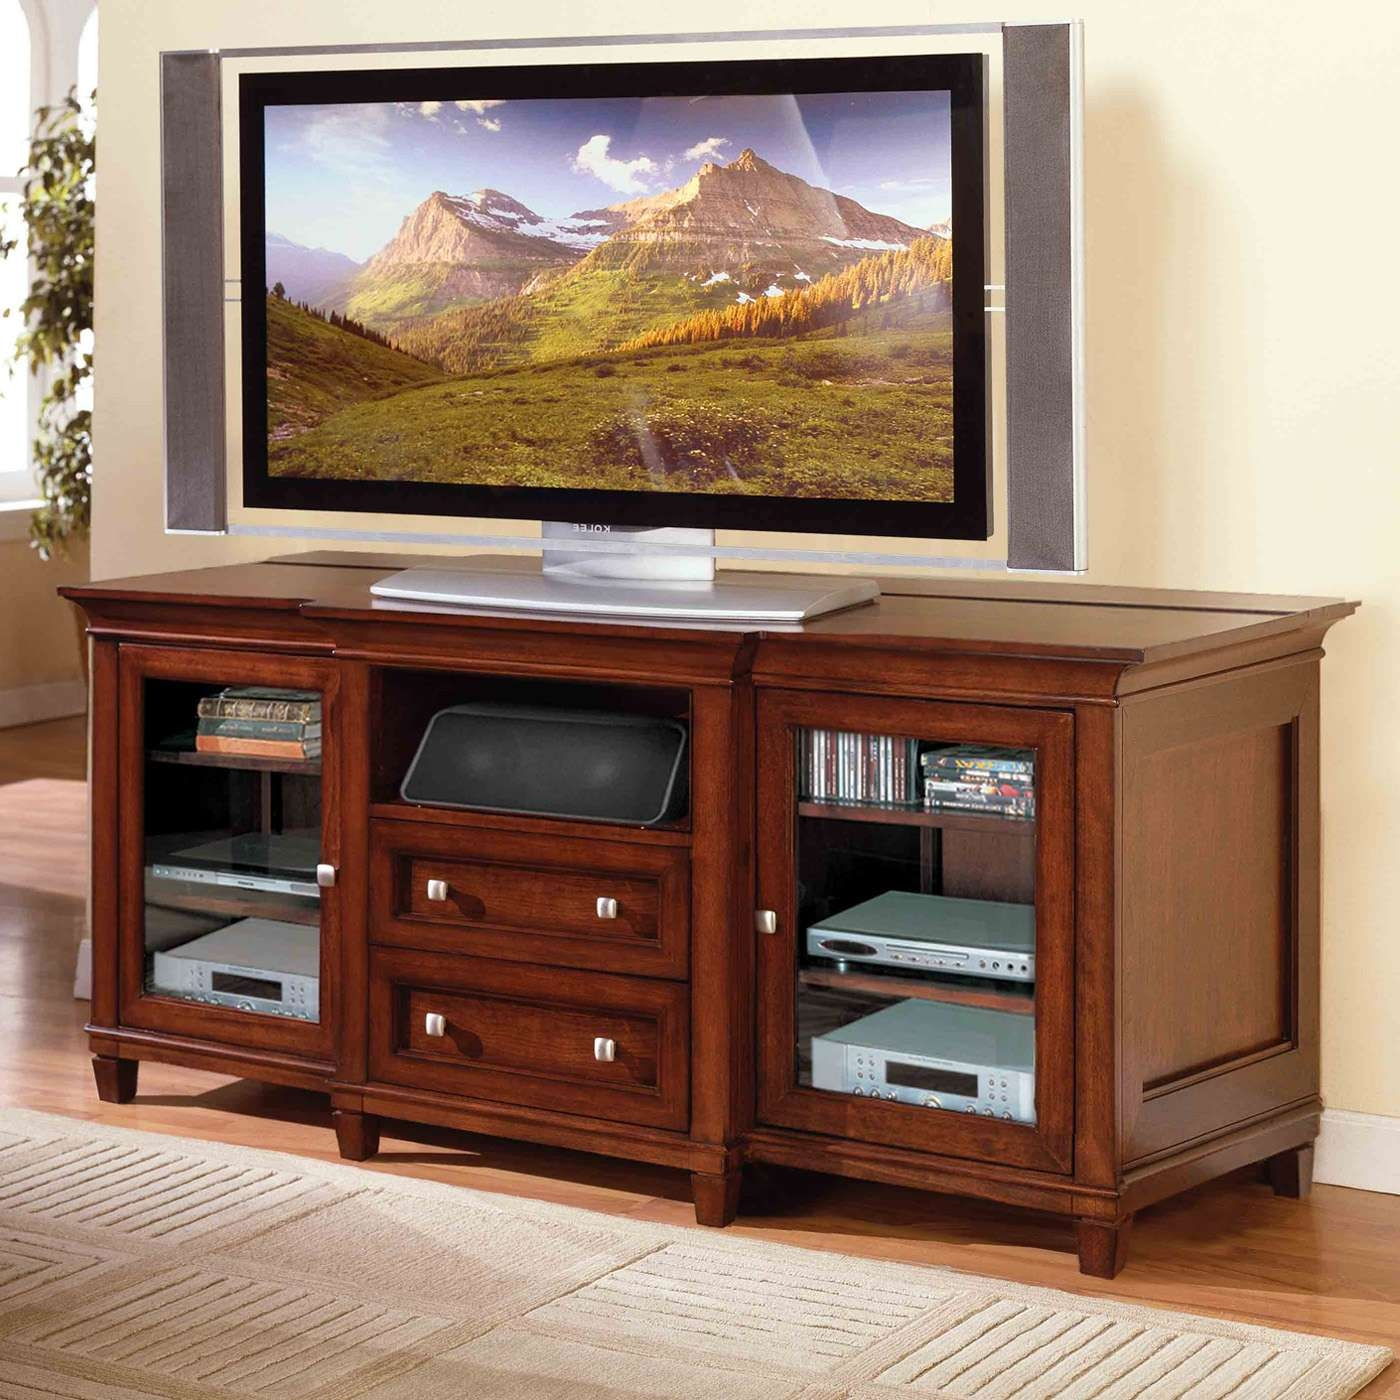 Brown Mahogany Wood Flat Screen Tv Stand With Storage Drawers Of Regarding Mahogany Tv Stands Furniture (View 2 of 15)